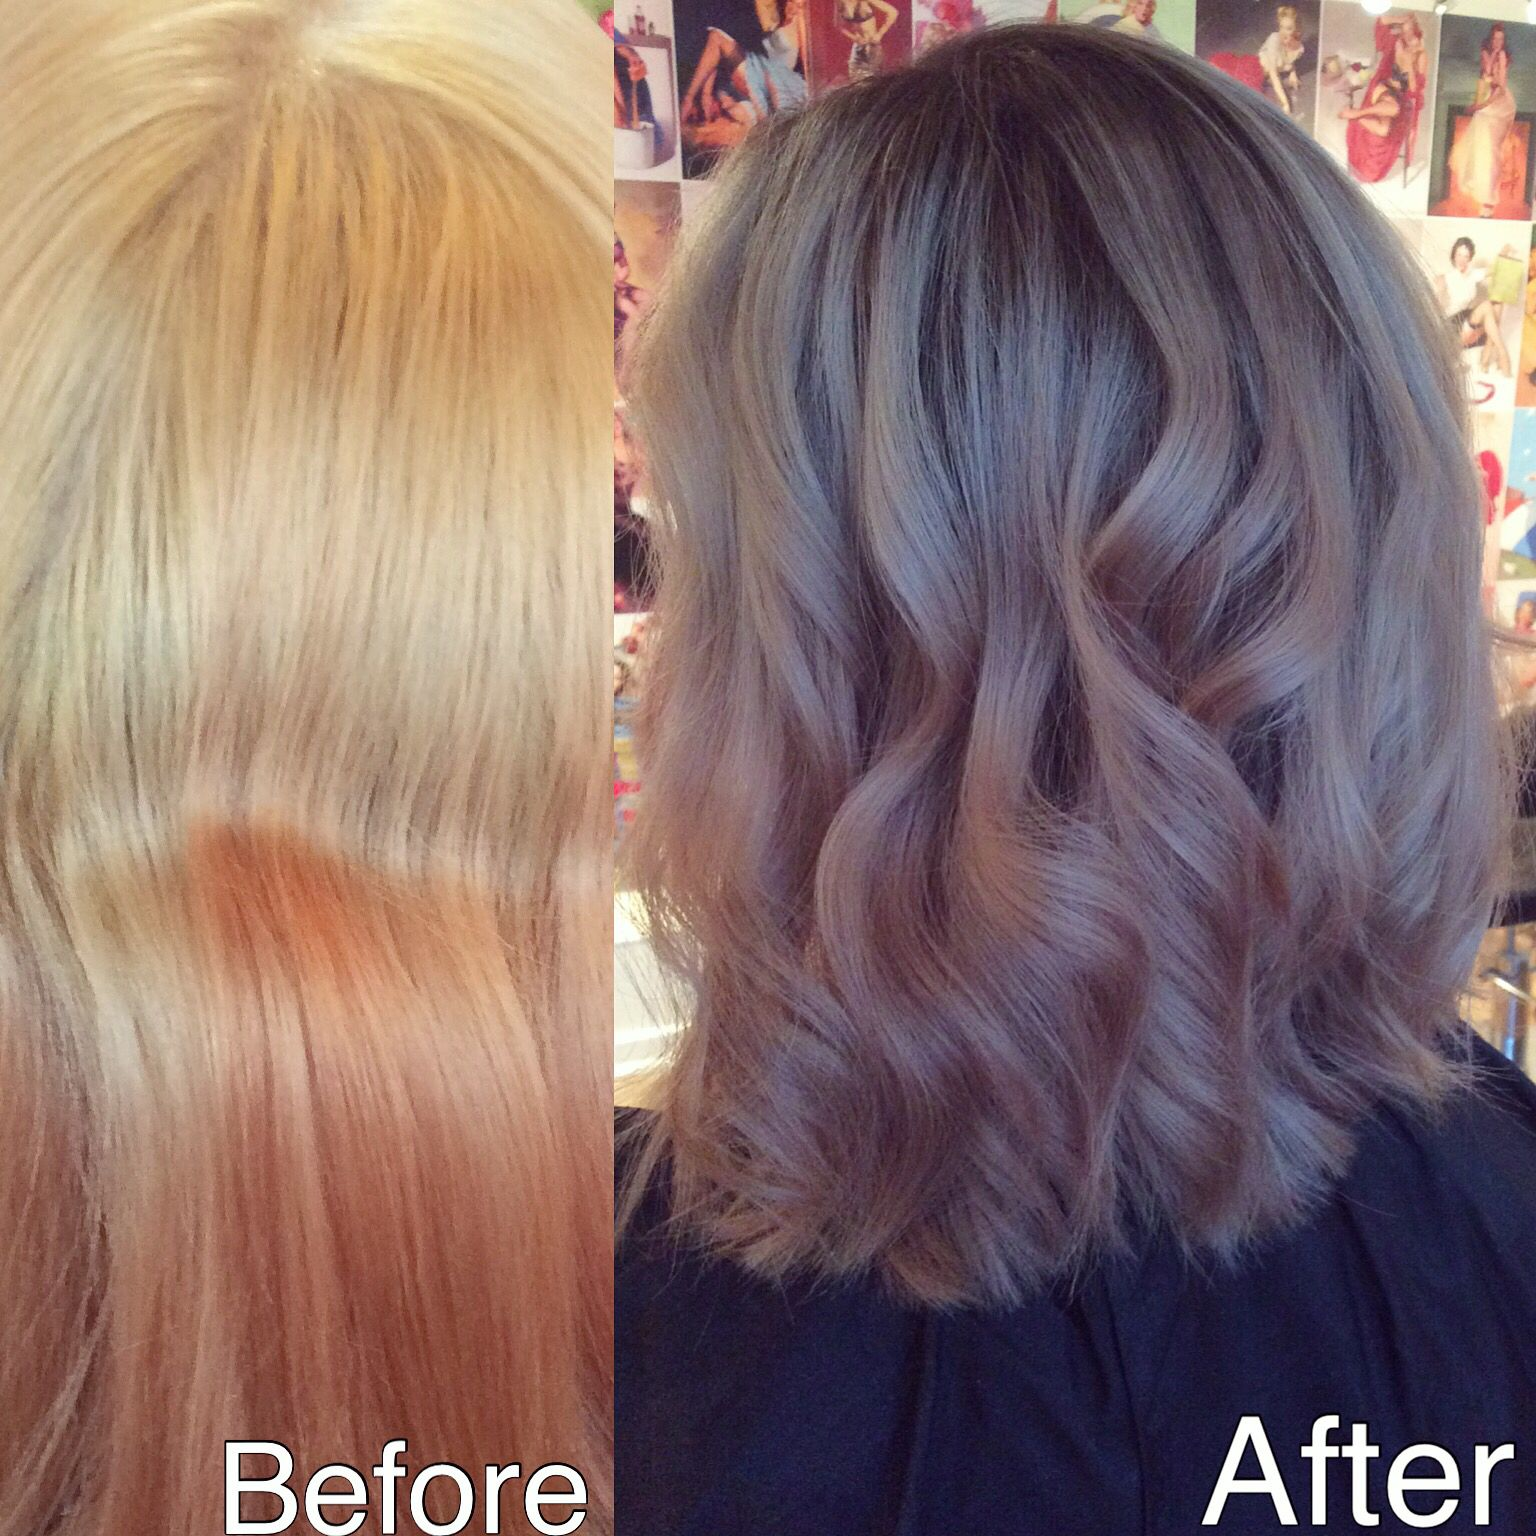 Transformation from a brassy orange home job to a healthy blonde